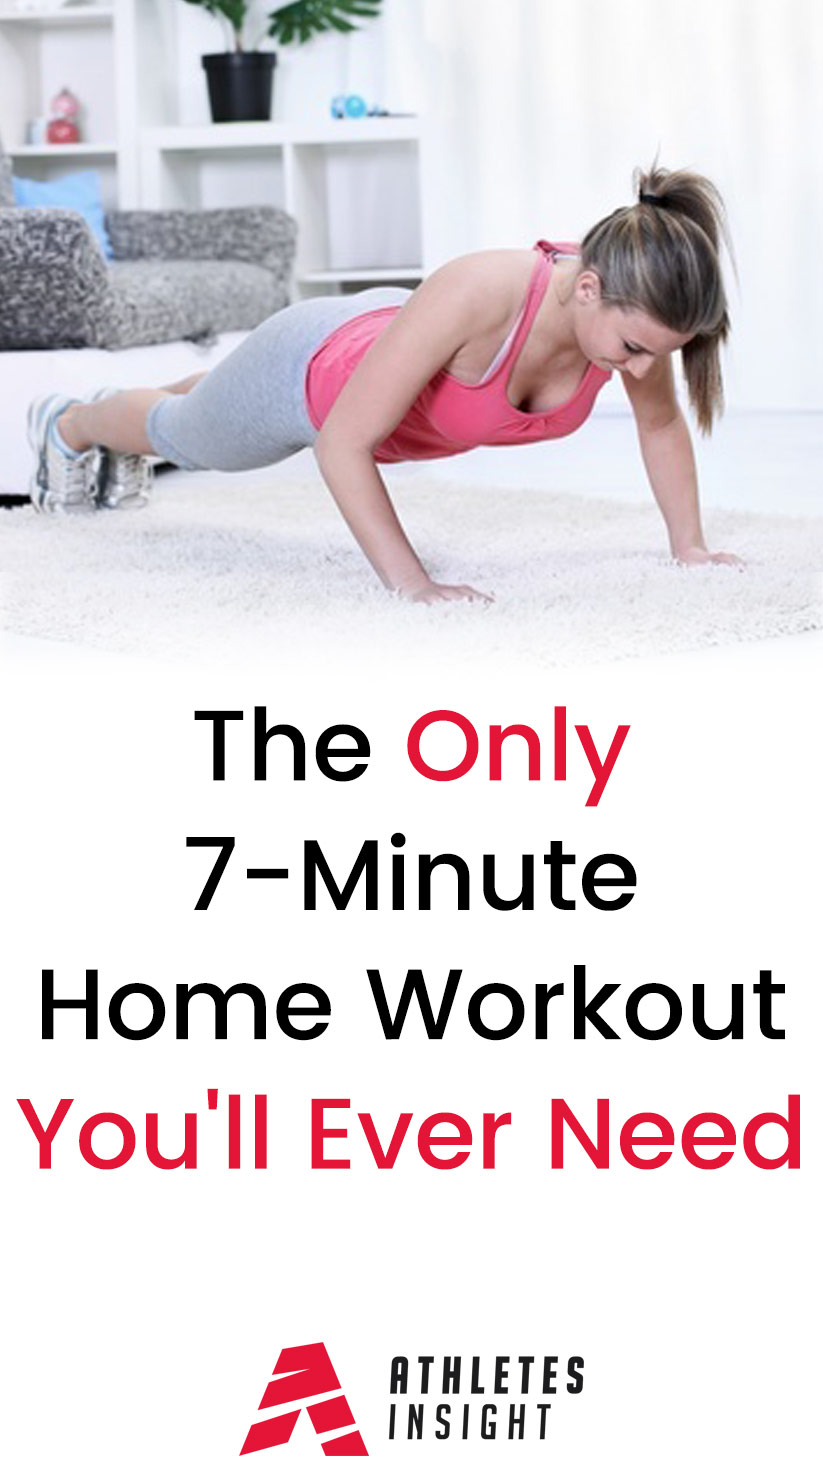 The Only 7-Minute Home Workout You'll Ever Need